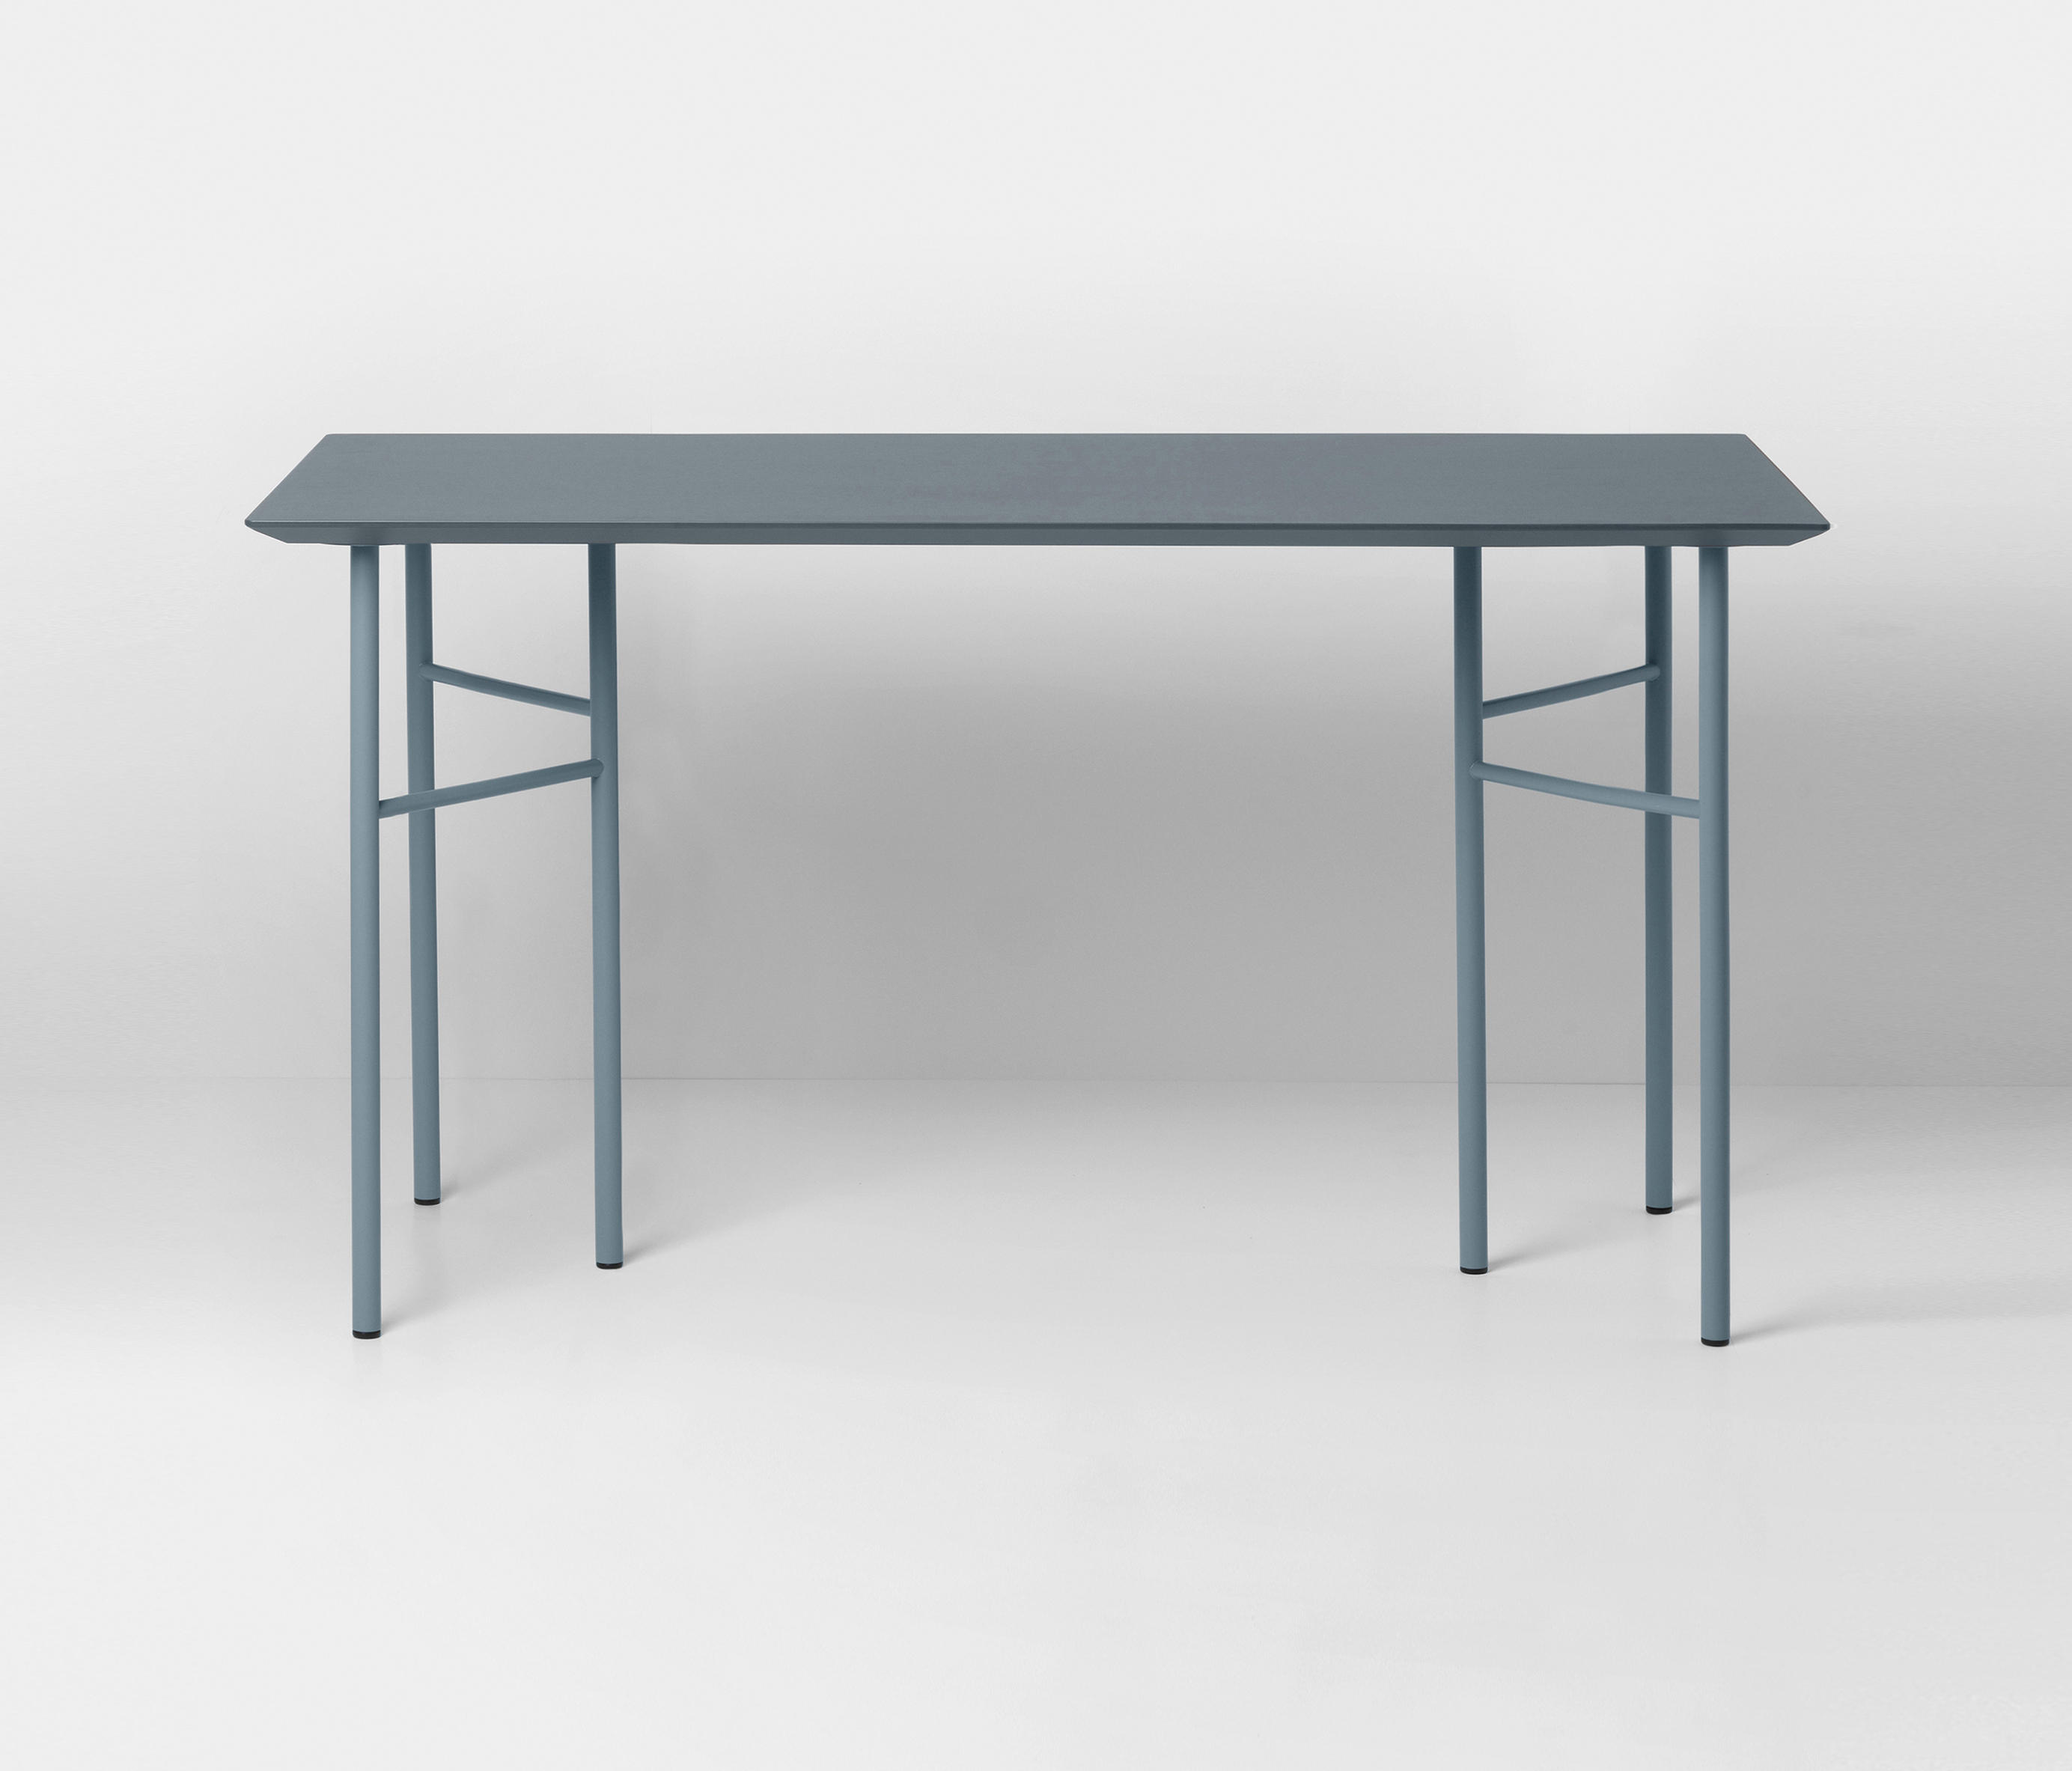 mingle table top dusty blue linoleum 135 cm tabletops from ferm living architonic. Black Bedroom Furniture Sets. Home Design Ideas